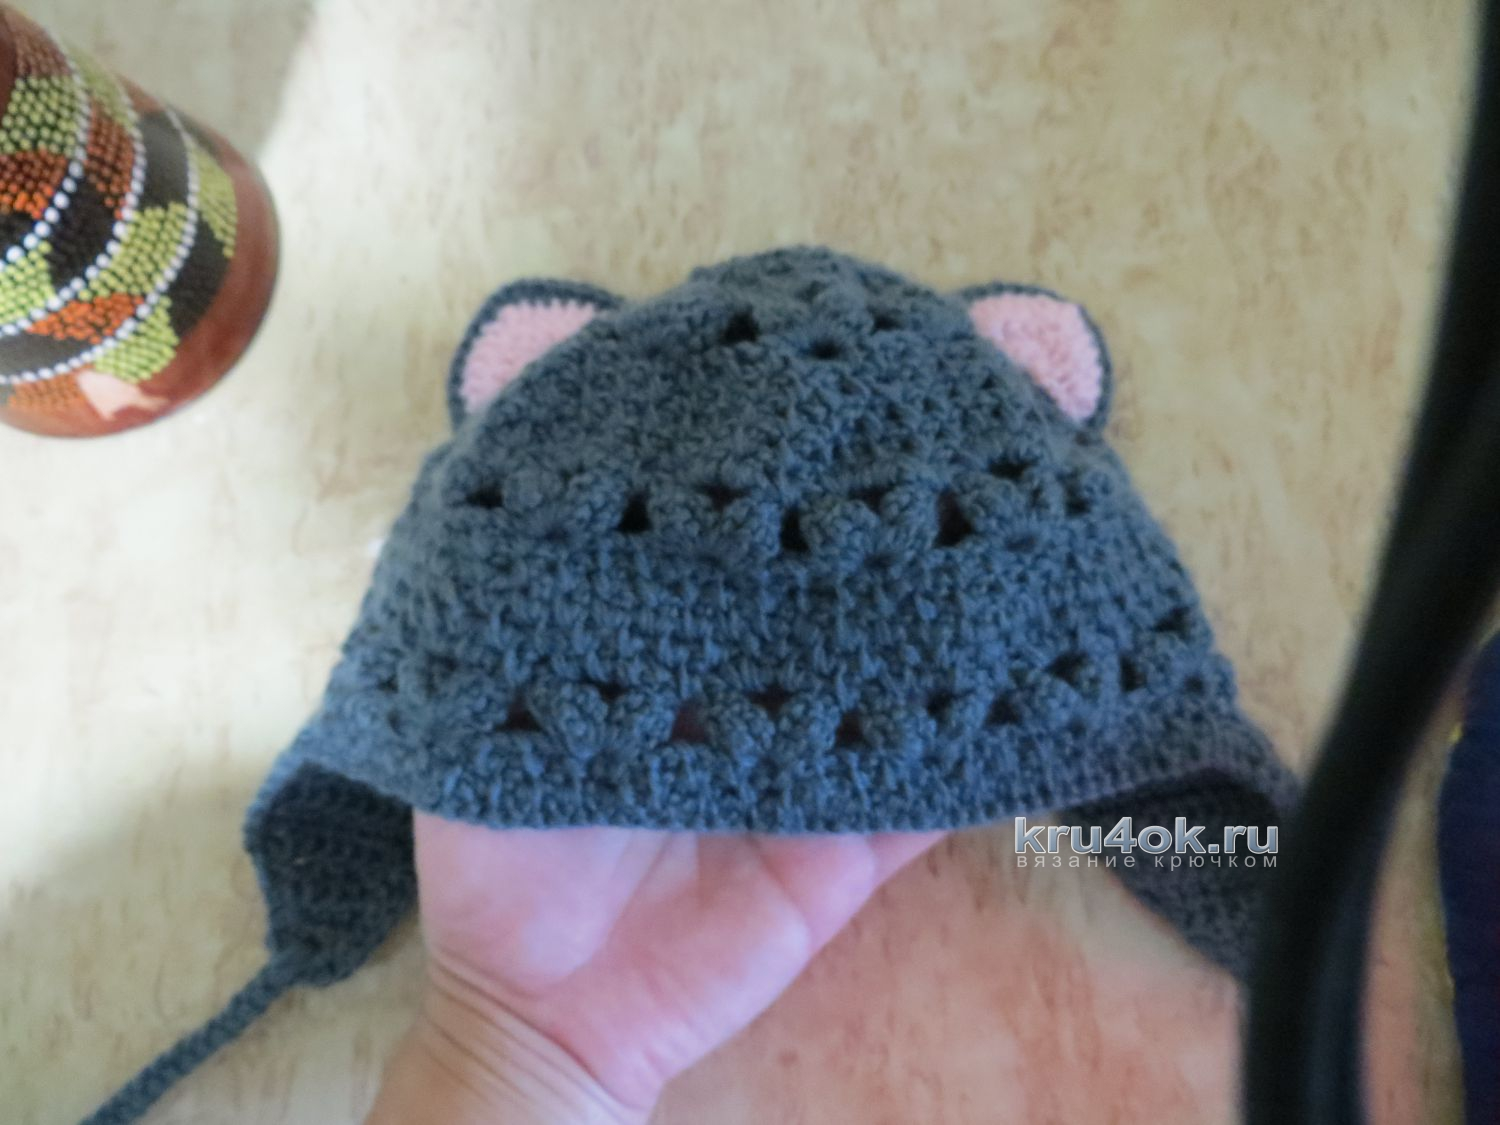 Cap for the girl crocheted. The work of Roxanne